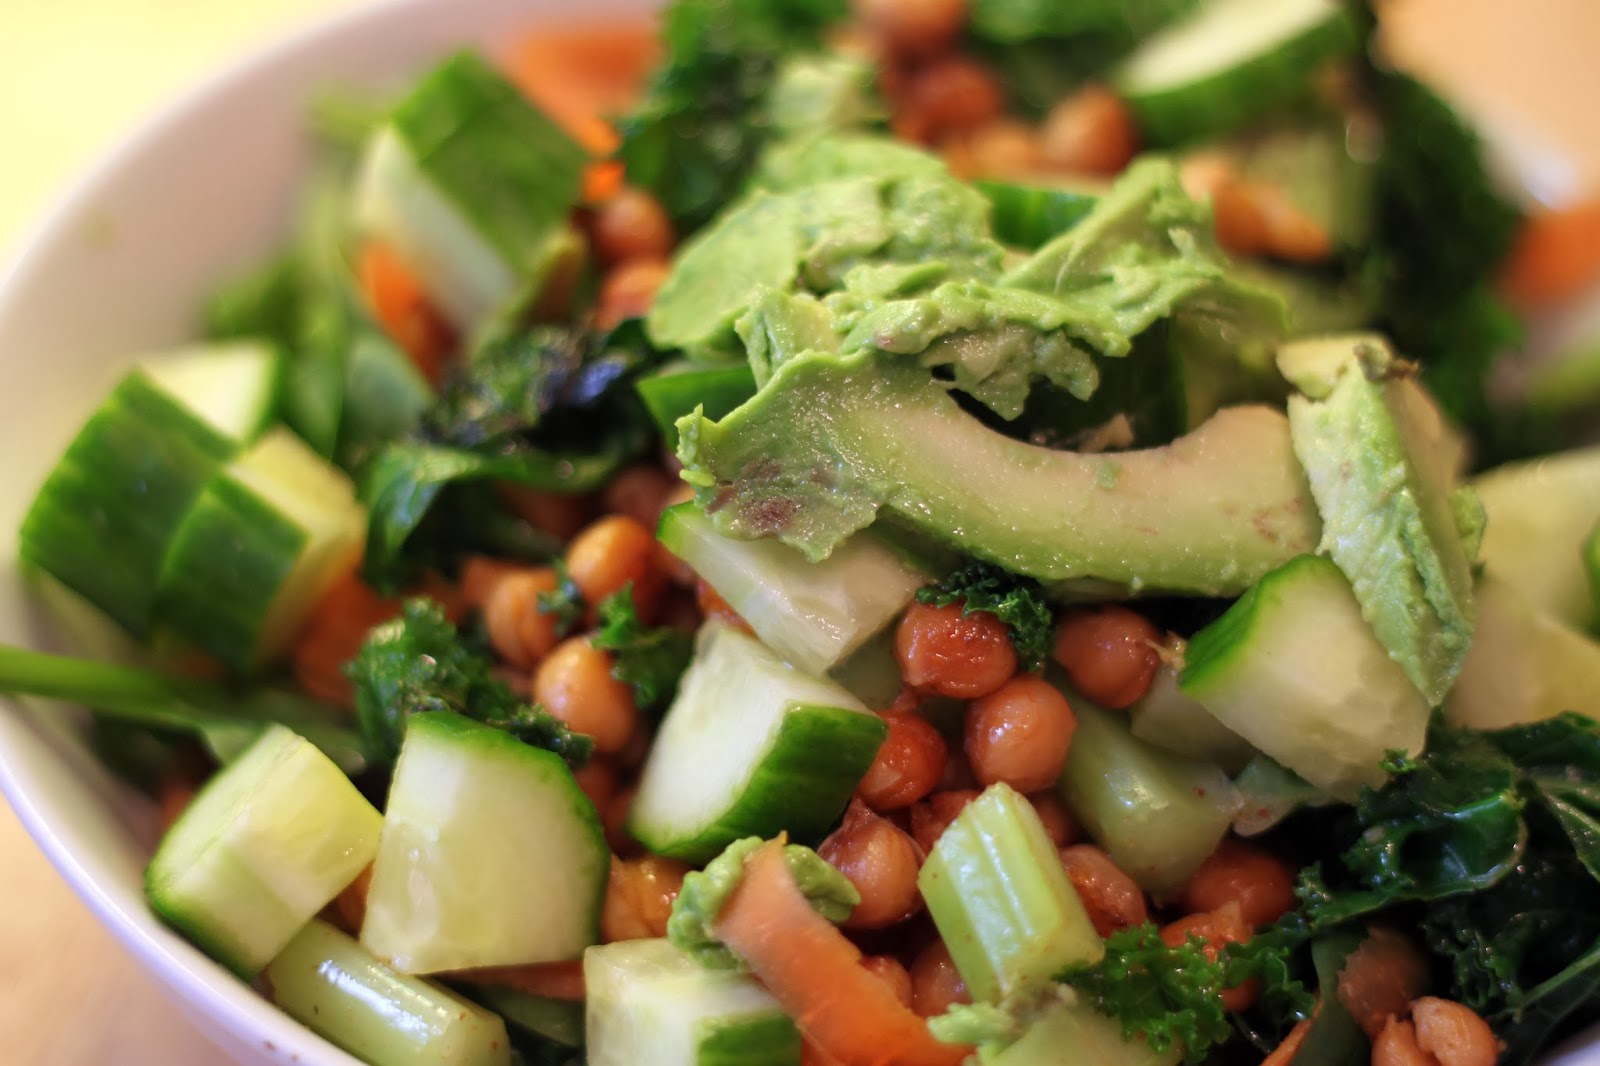 FOOD : ROASTED CHICKPEA AND KALE SALAD